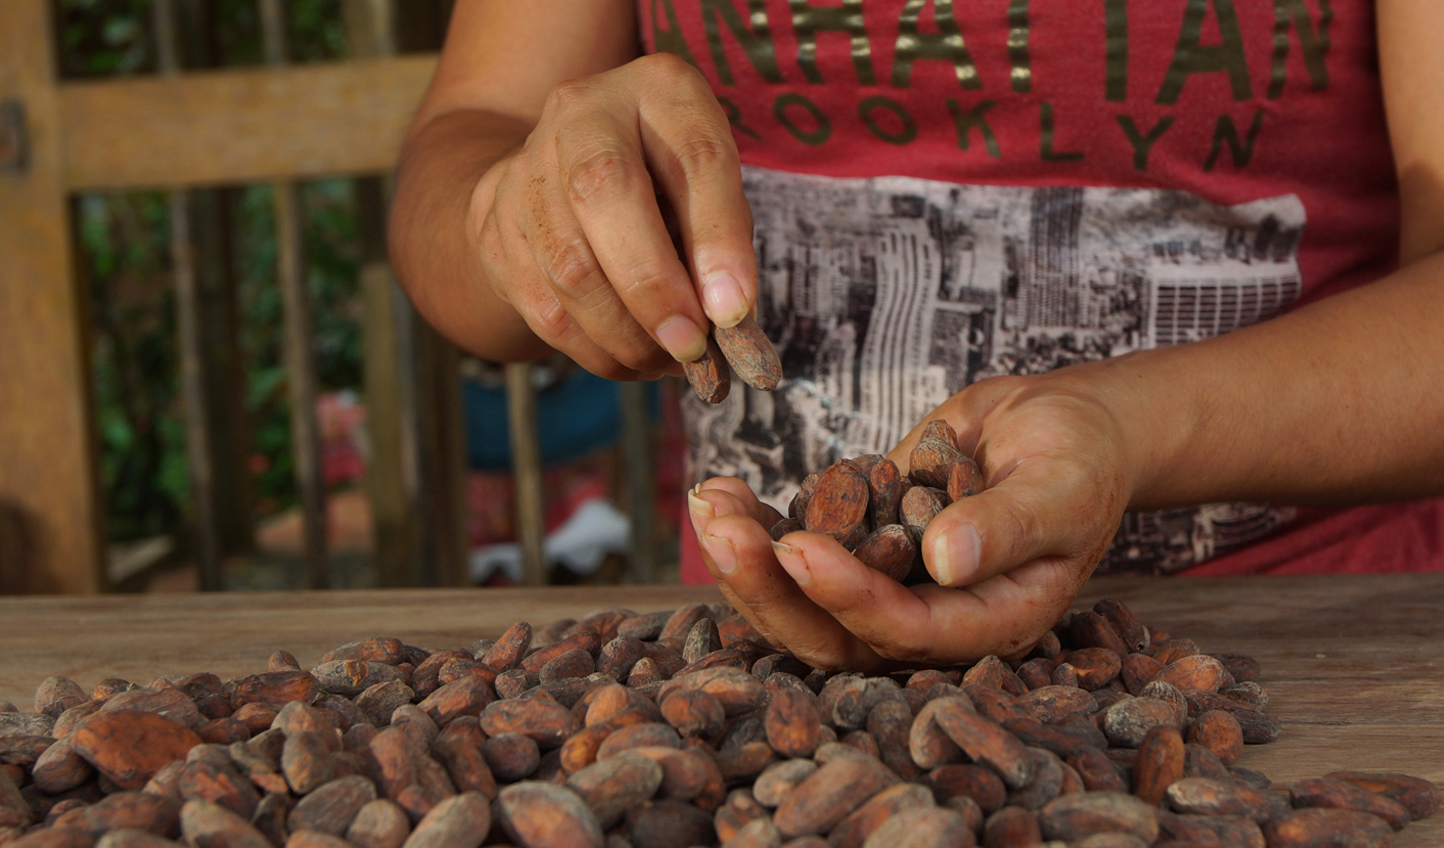 Select the finest cocoa beans for your chocolate experience